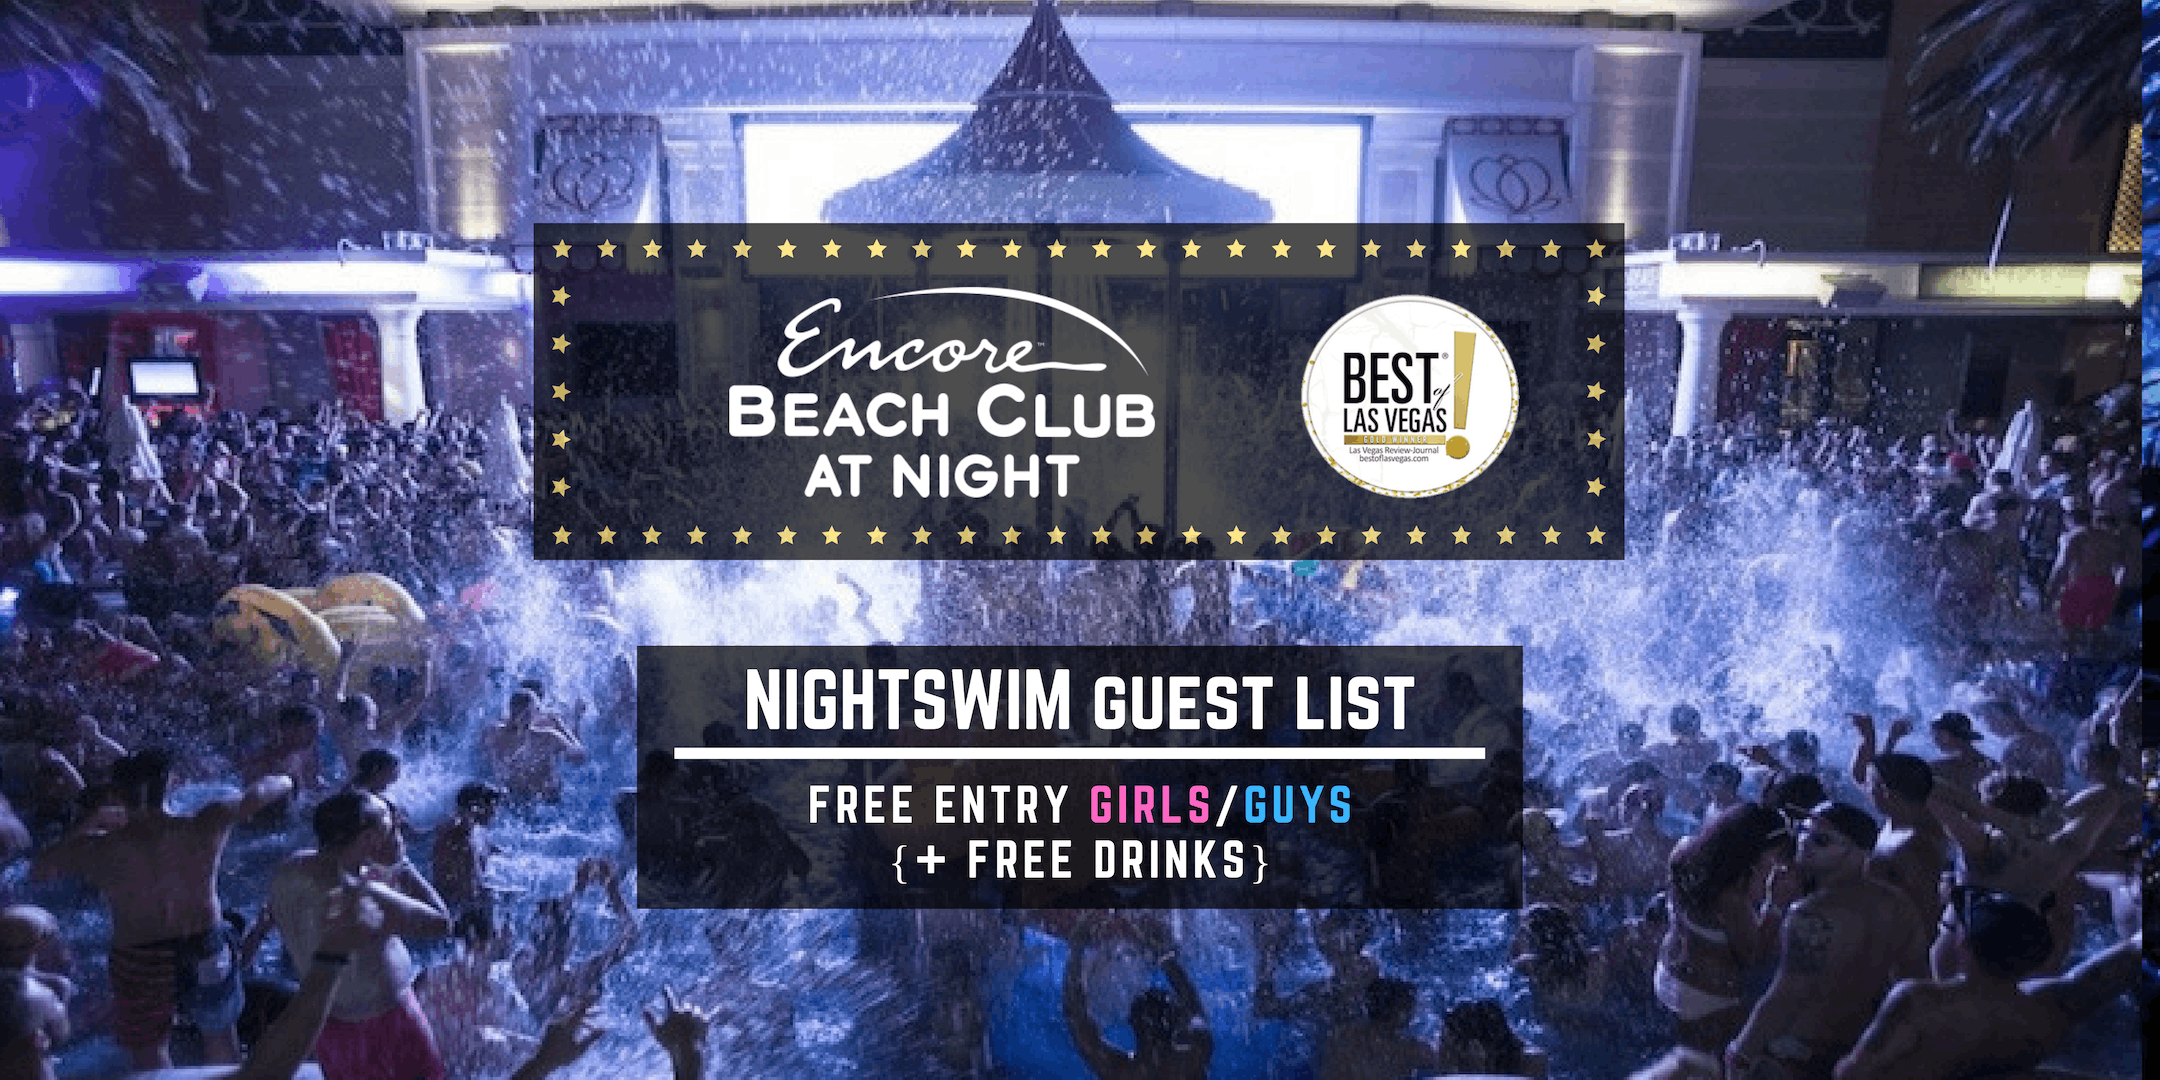 Encore Beach Club Nightswim: FREE Entry/FREE